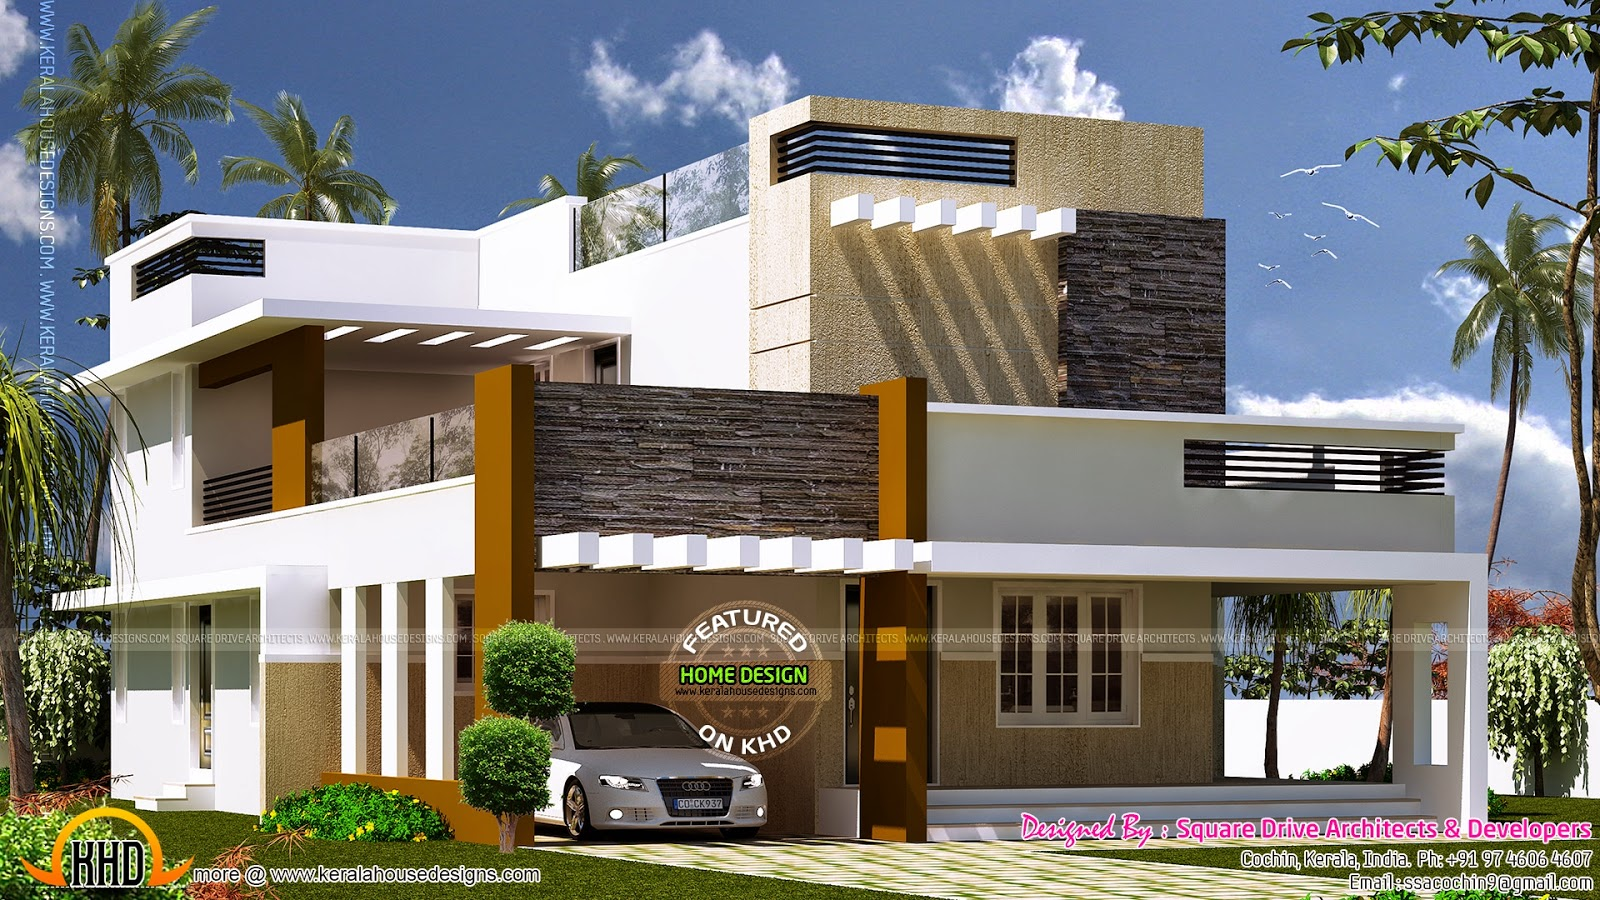 Exterior design of contemporary villa kerala home design Pictures of exterior home designs in india